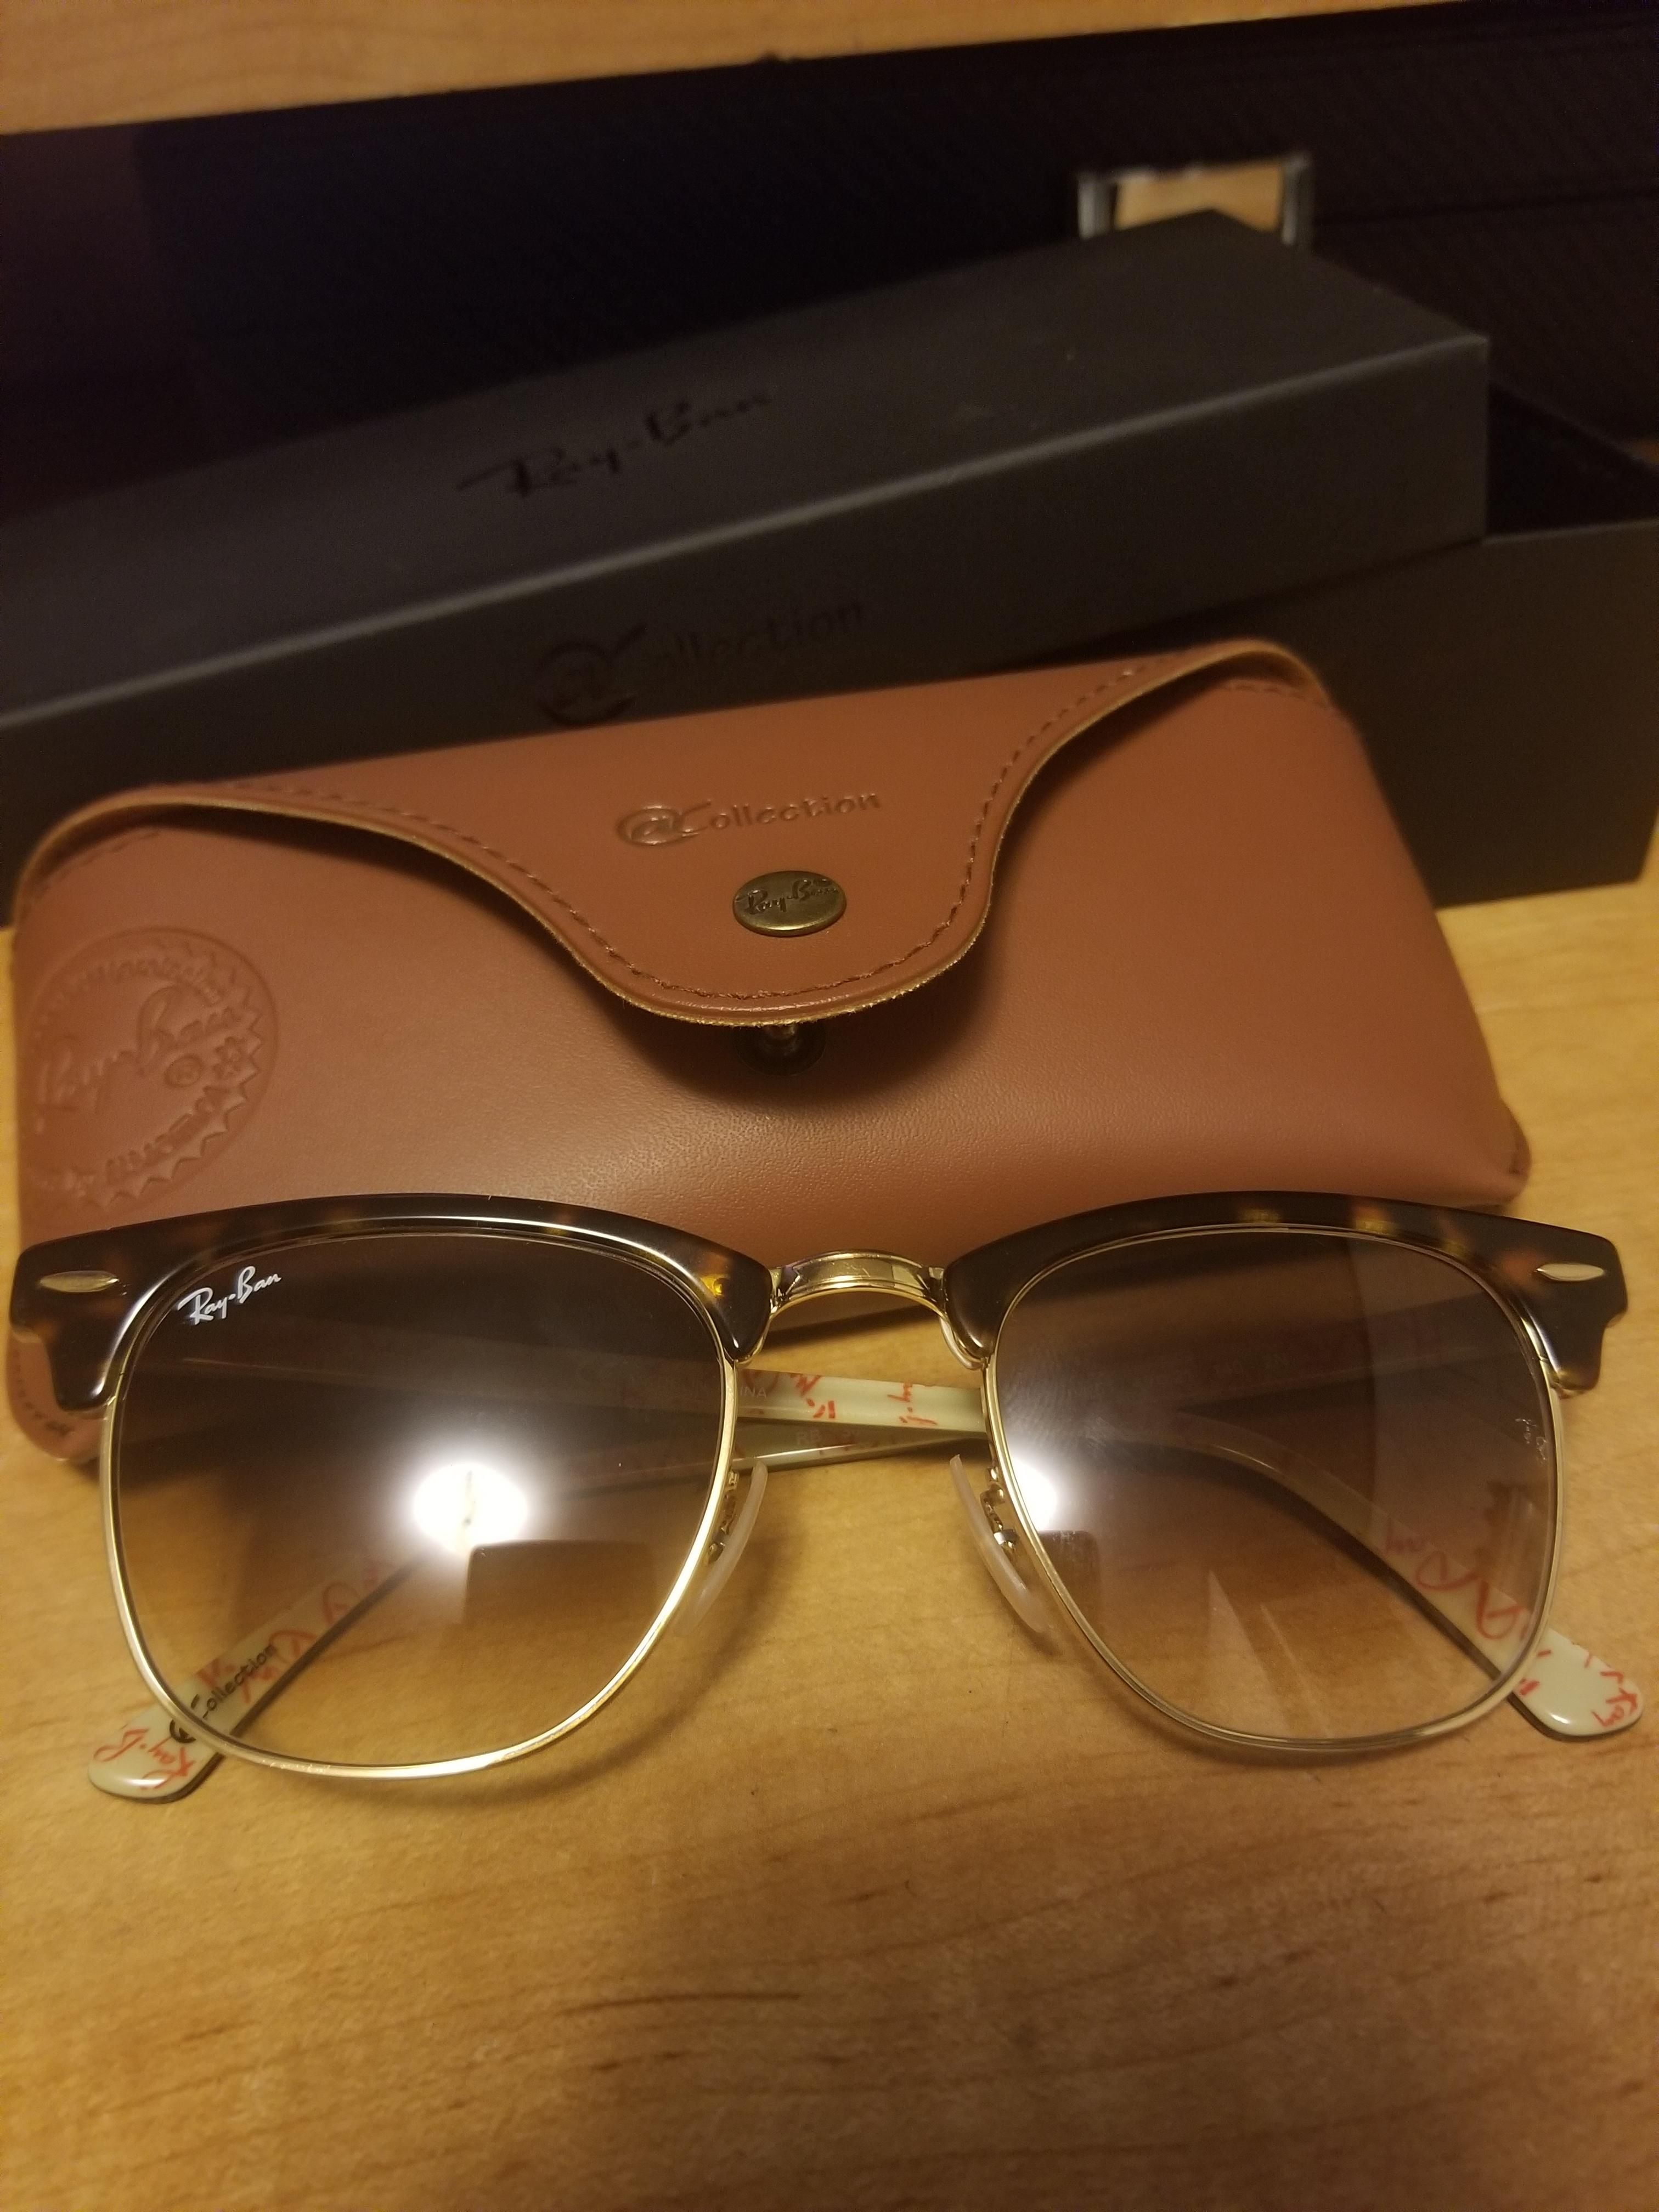 5176e53f2f6 I bought these ray bans online are they for men or are they for women